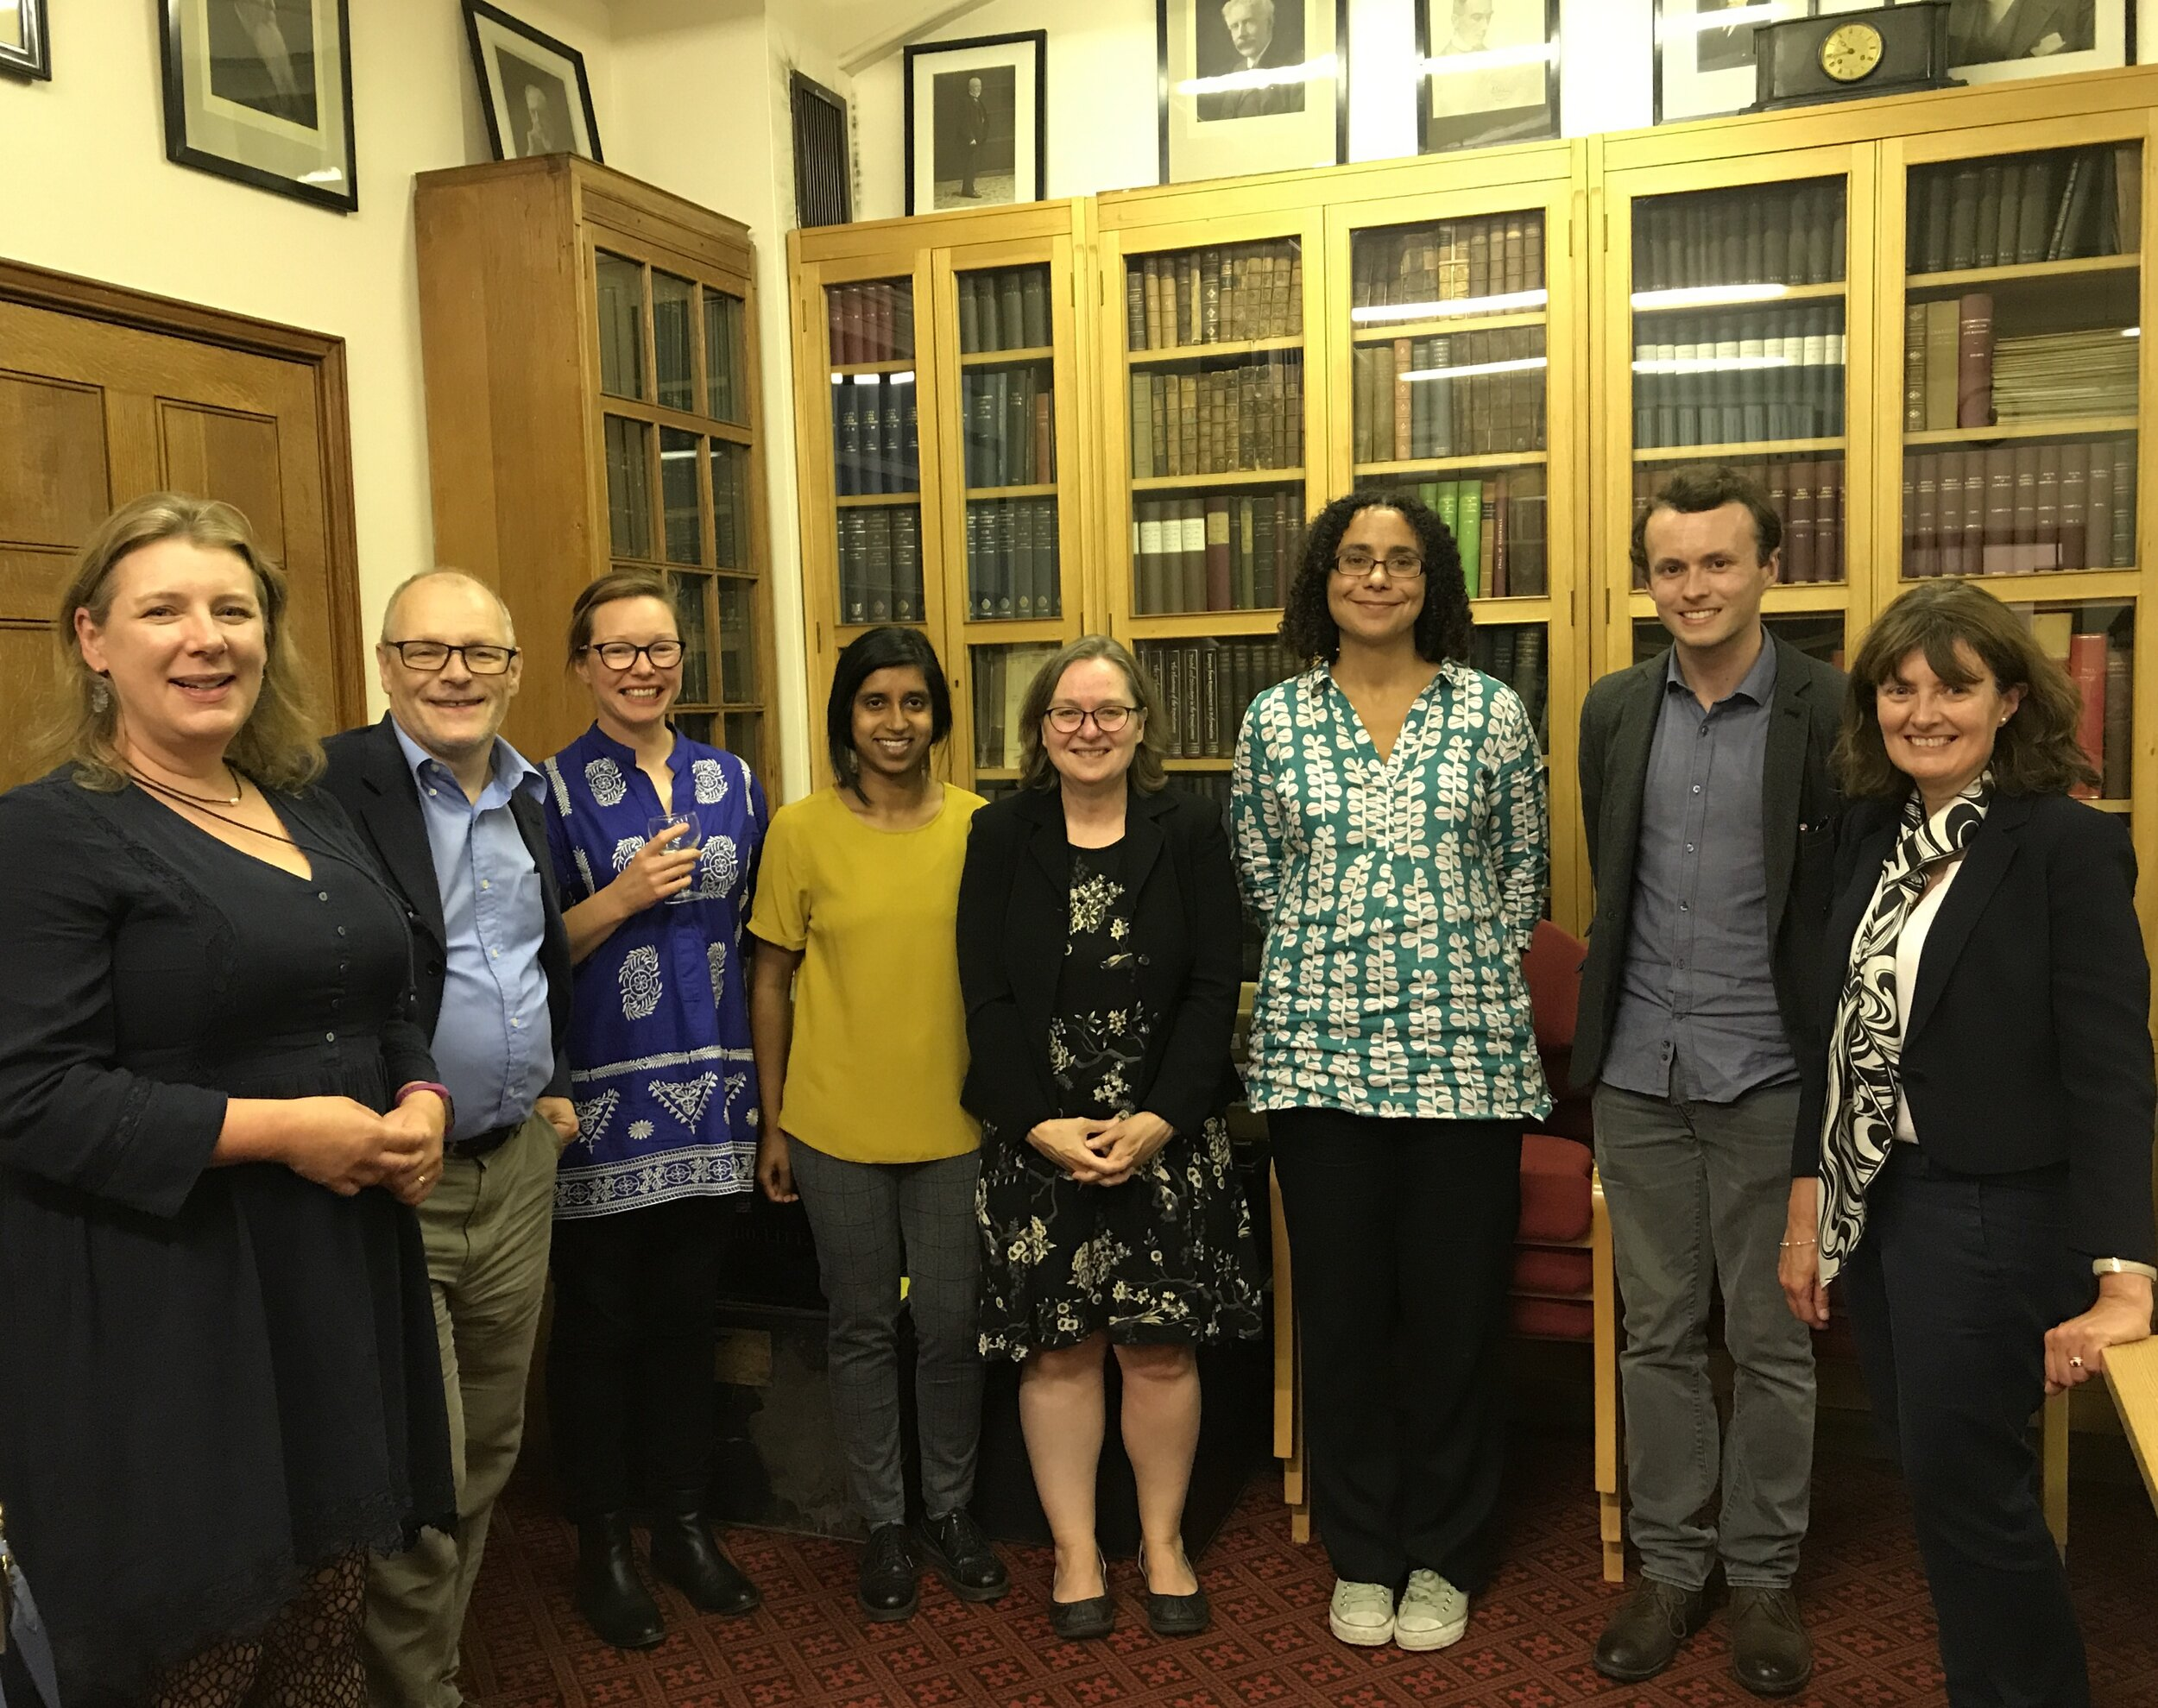 L-R: Prof Grace Lees-Maffei and Prof Jonathan Morris (Hertfordshire), Dr Victoria Leonard (Royal Holloway), Dr Shahmima Ahktar (Past and Present Fellow, Royal Historical Society), Prof Margot Finn (UCL), Prof Katherine Harloe (Reading), Edwin Rose (University of Cambridge), Dr Clare Taylor (Open University). Photograph by Council Member Dr Oleg Benesch (Senior Lecturer in East Asian History, University of York).